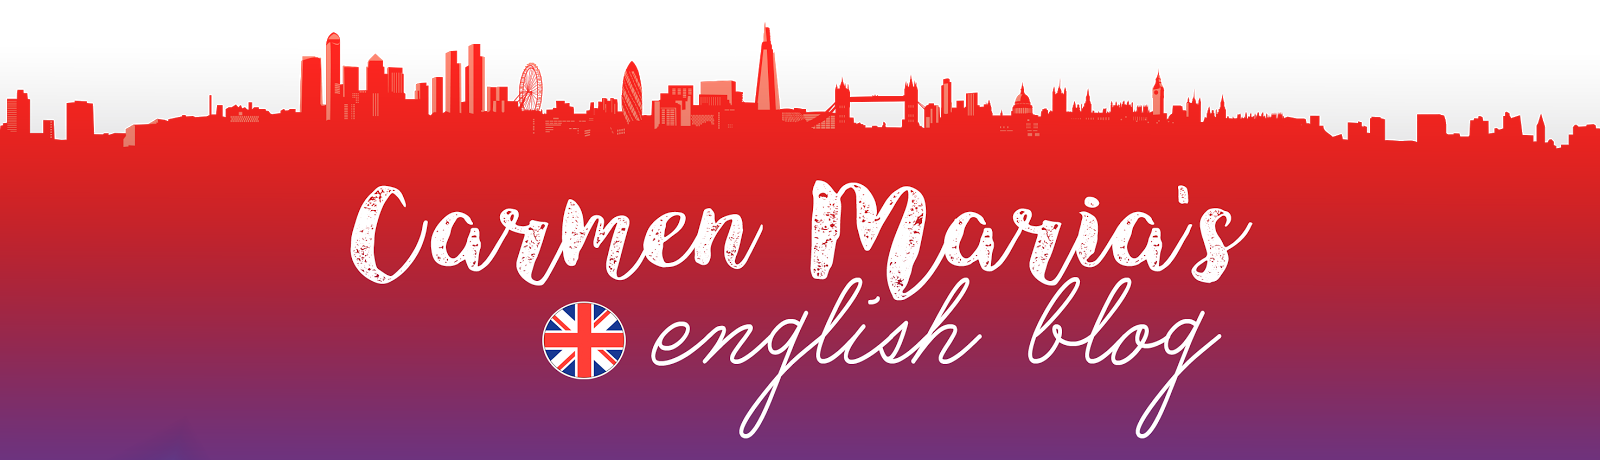 Carmen María's English Blog